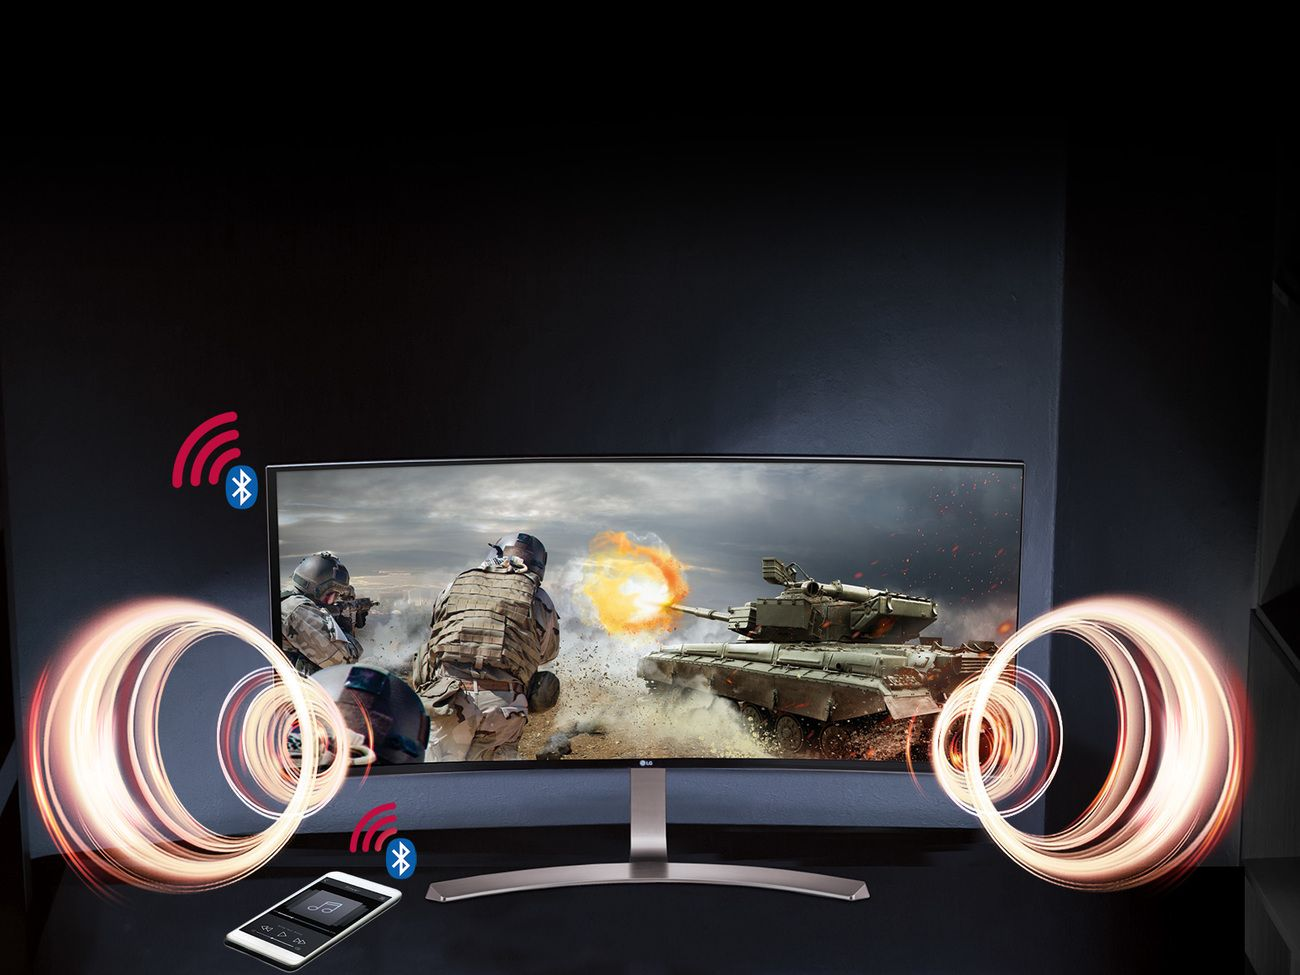 38-Inch UltraWide Curved Display by LG